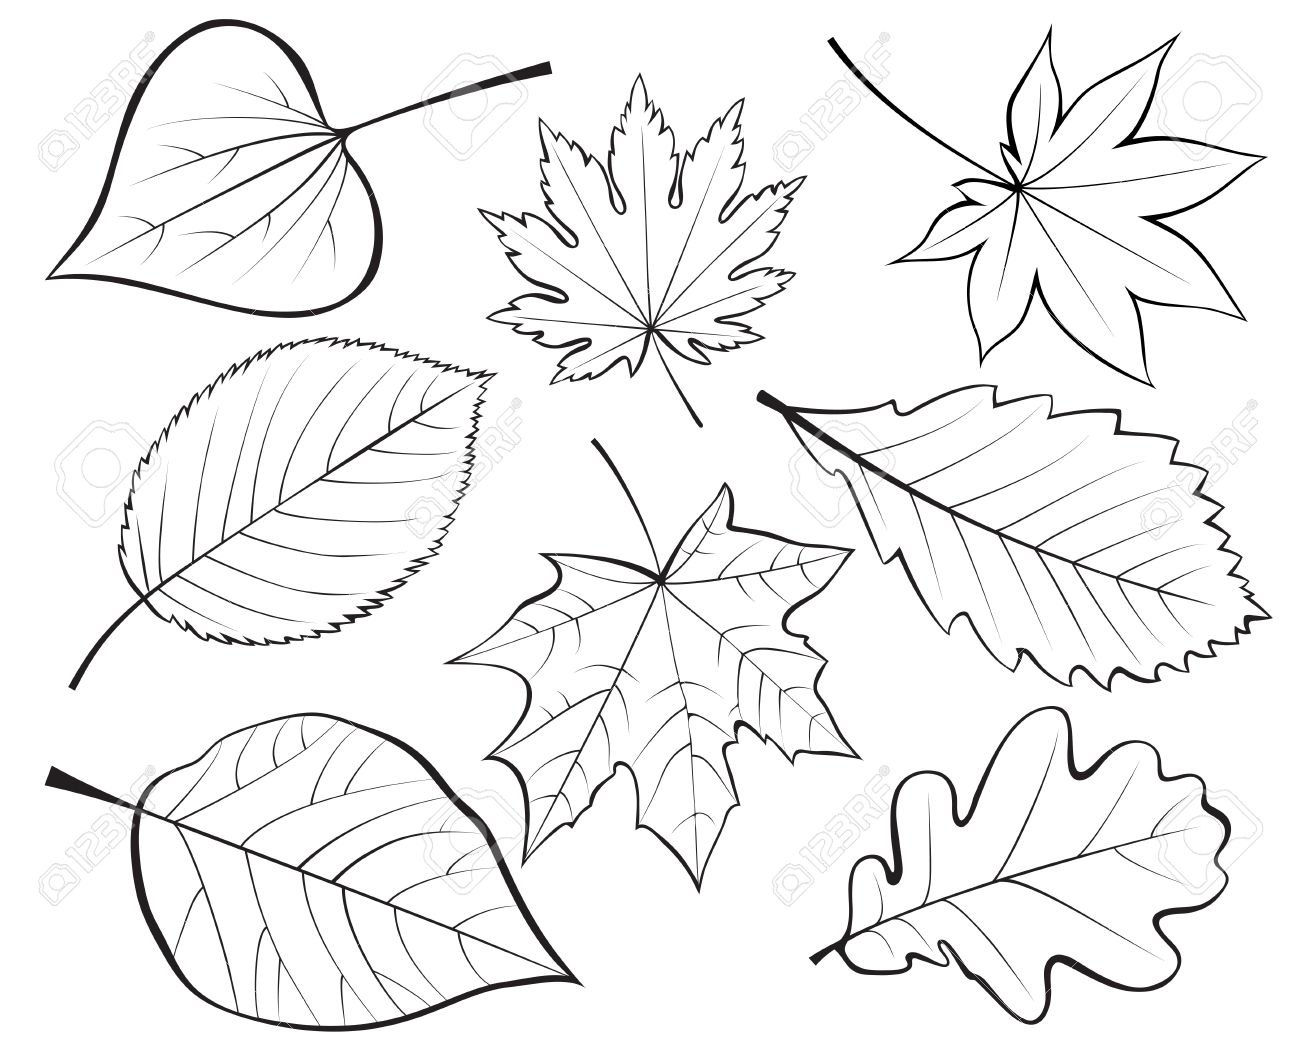 Line Drawing Leaf : Leaf drawing pictures at getdrawings free for